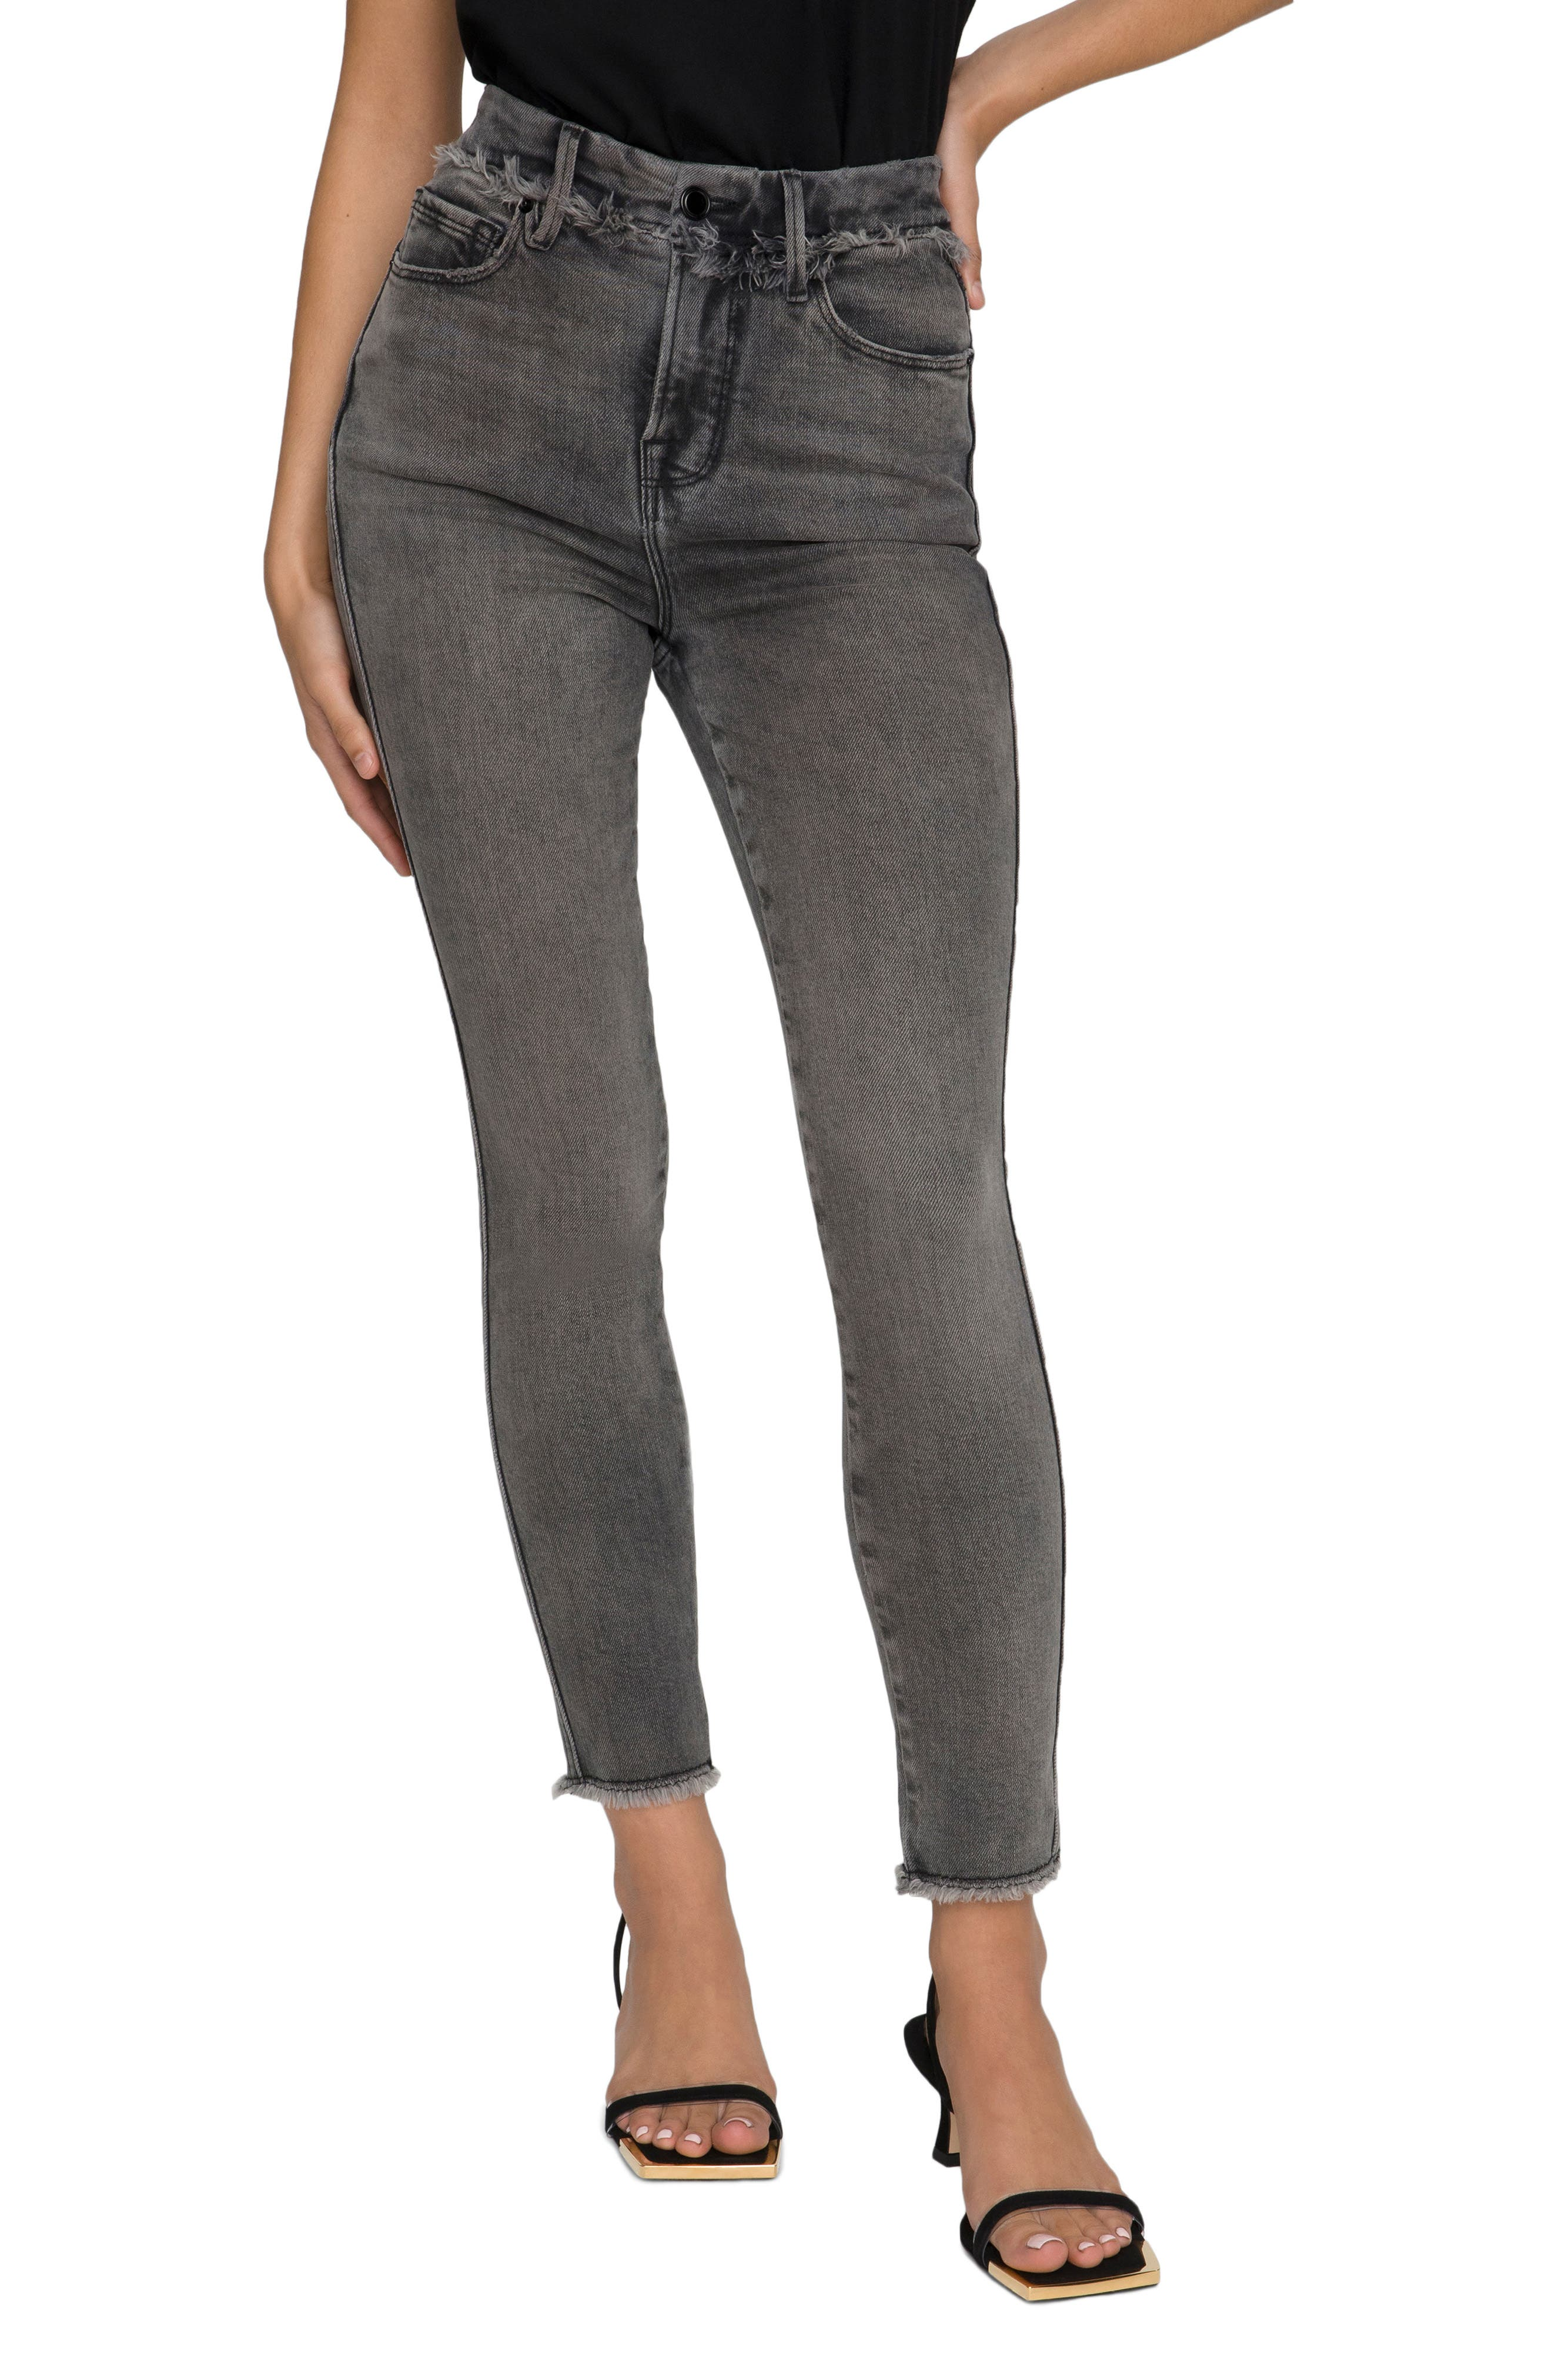 Women's Good American Good Curve Frayed Ankle Skinny Jeans